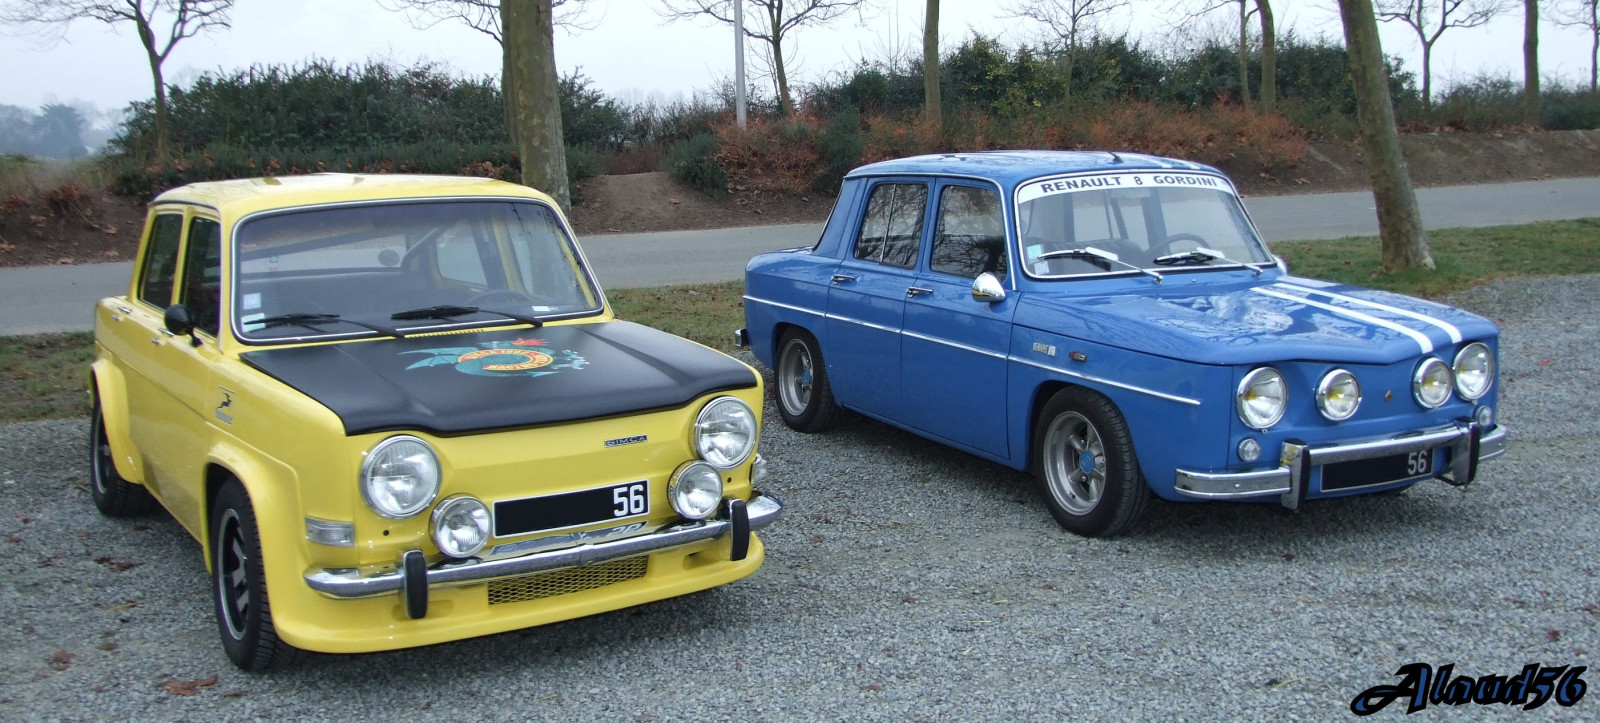 Which one of those two old school french rally car would you pick?